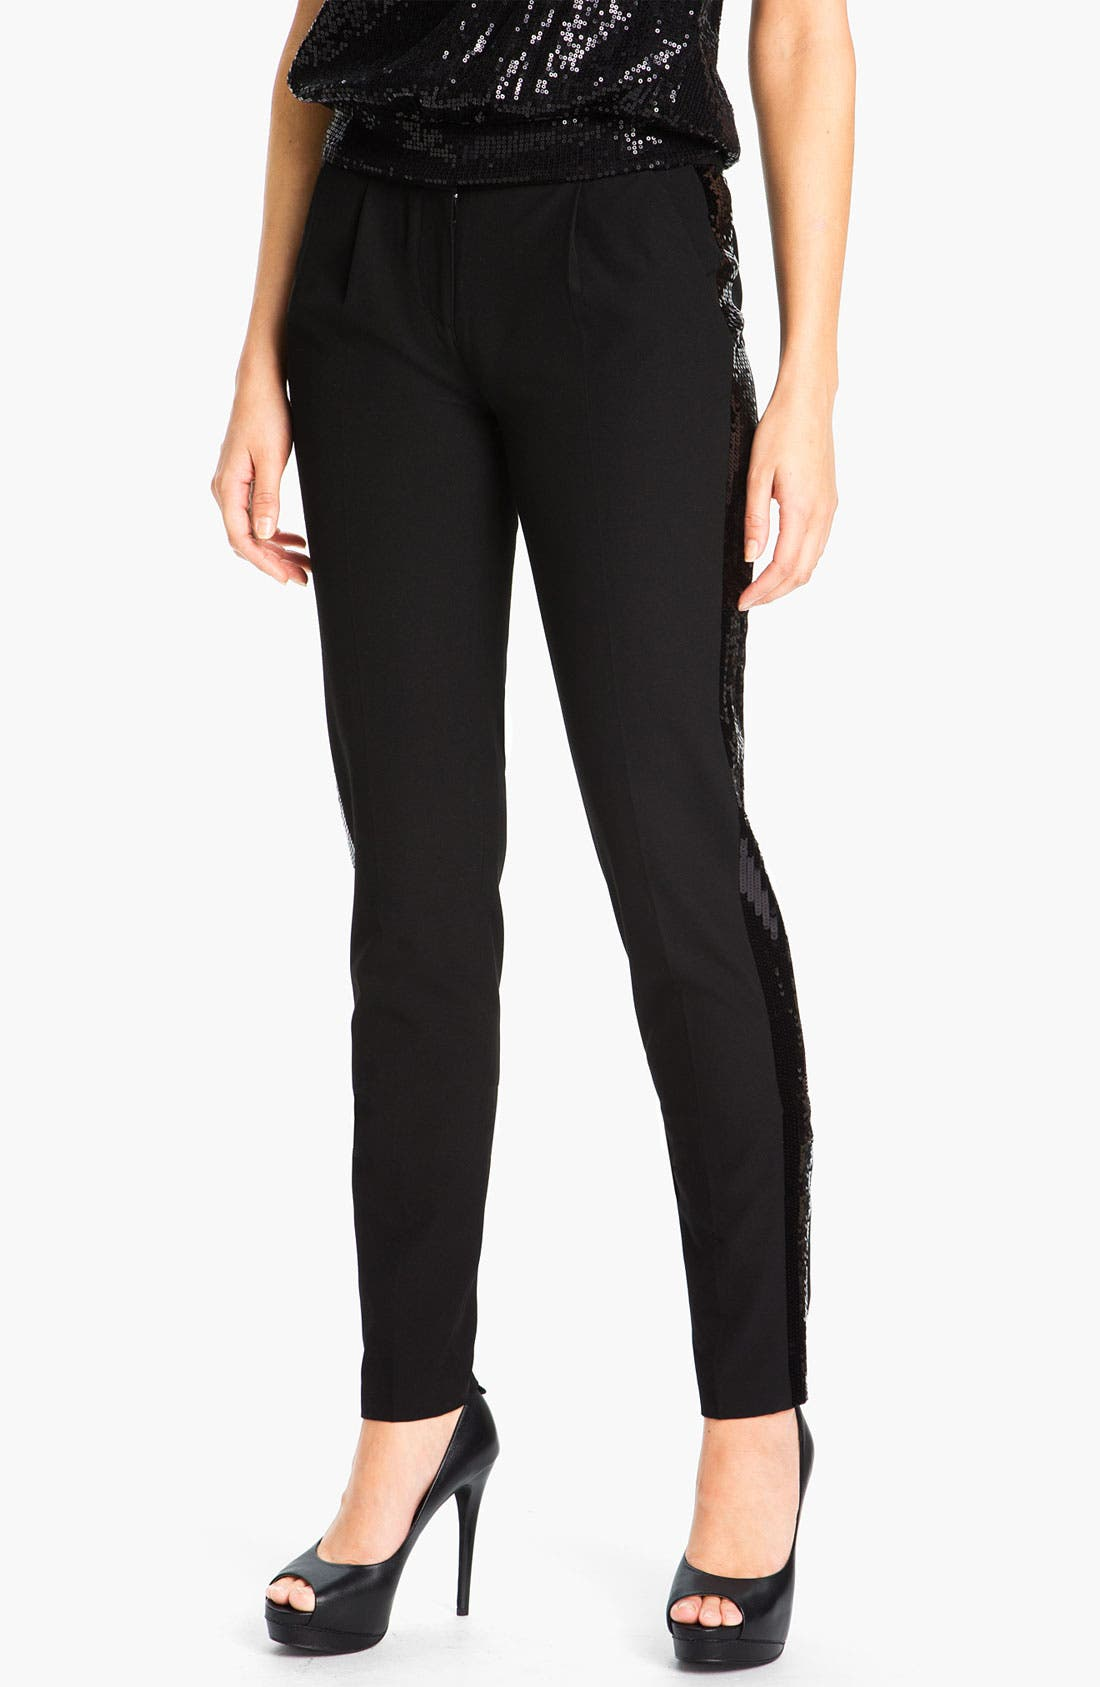 Alternate Image 1 Selected - MICHAEL Michael Kors Sequin Tuxedo Pants